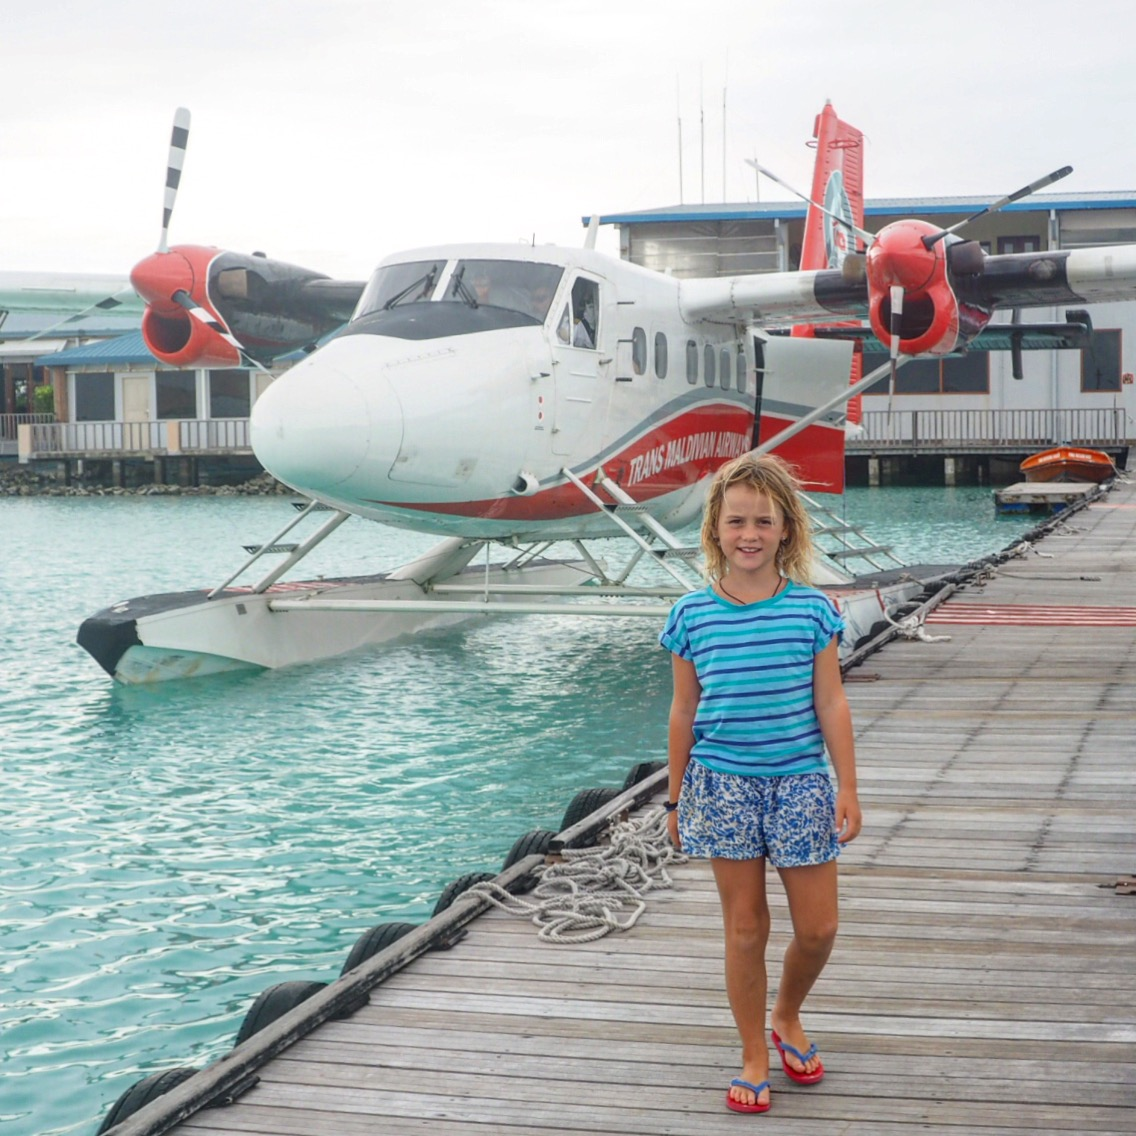 OUR FIRST FLIGHT ON A SEAPLANE